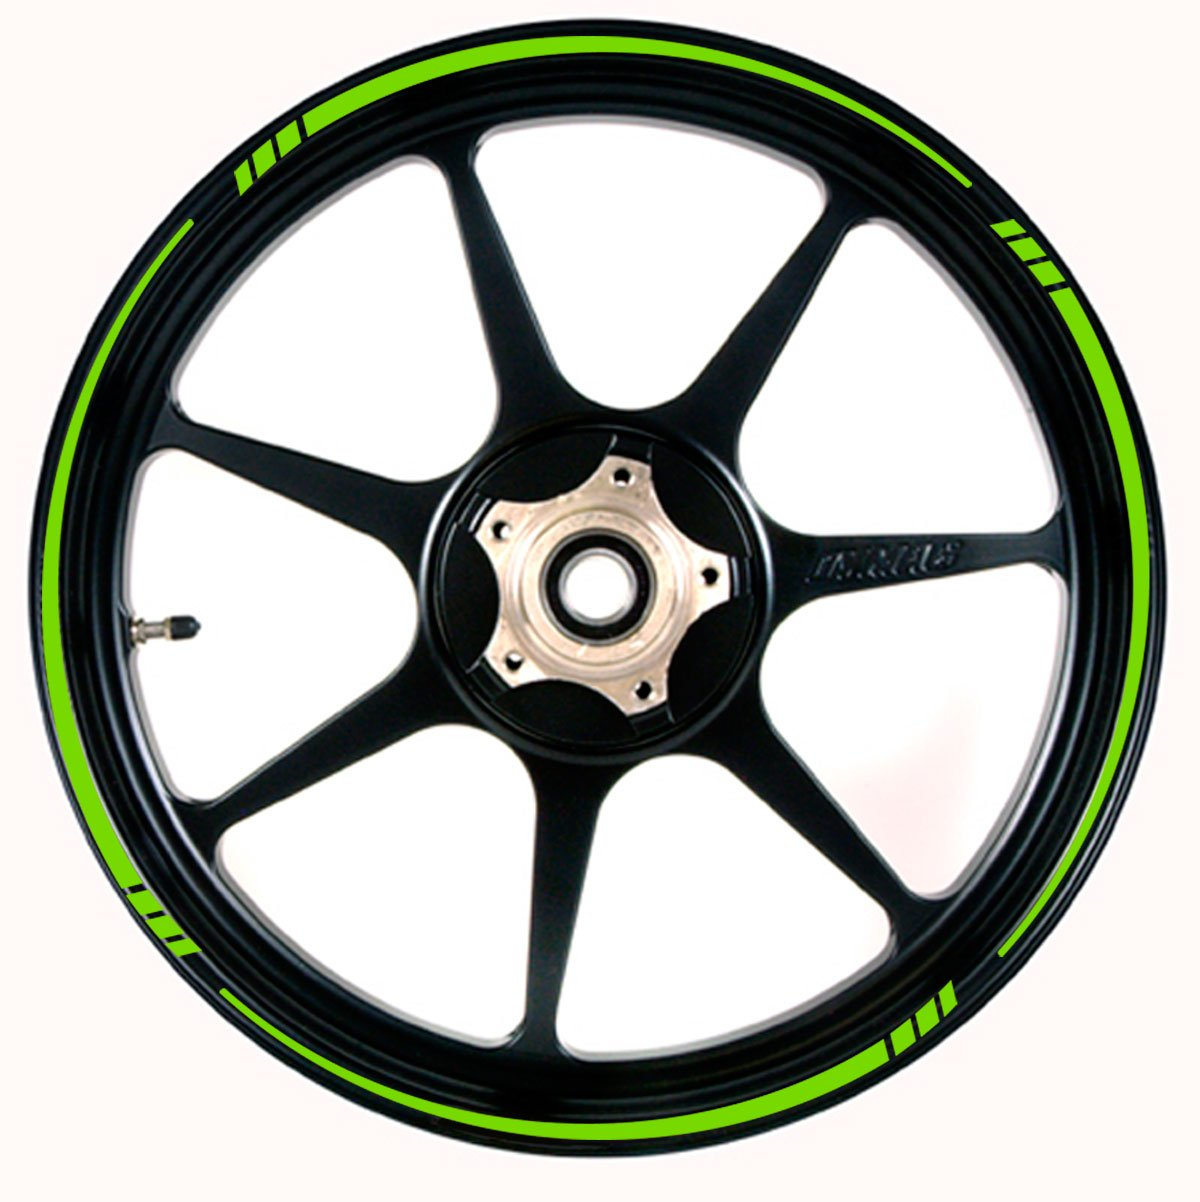 Amazoncom BRIGHT GREEN Wheel Rim Tape TAPERED Stripe Fit ALL - Vinyl stripes for motorcycles